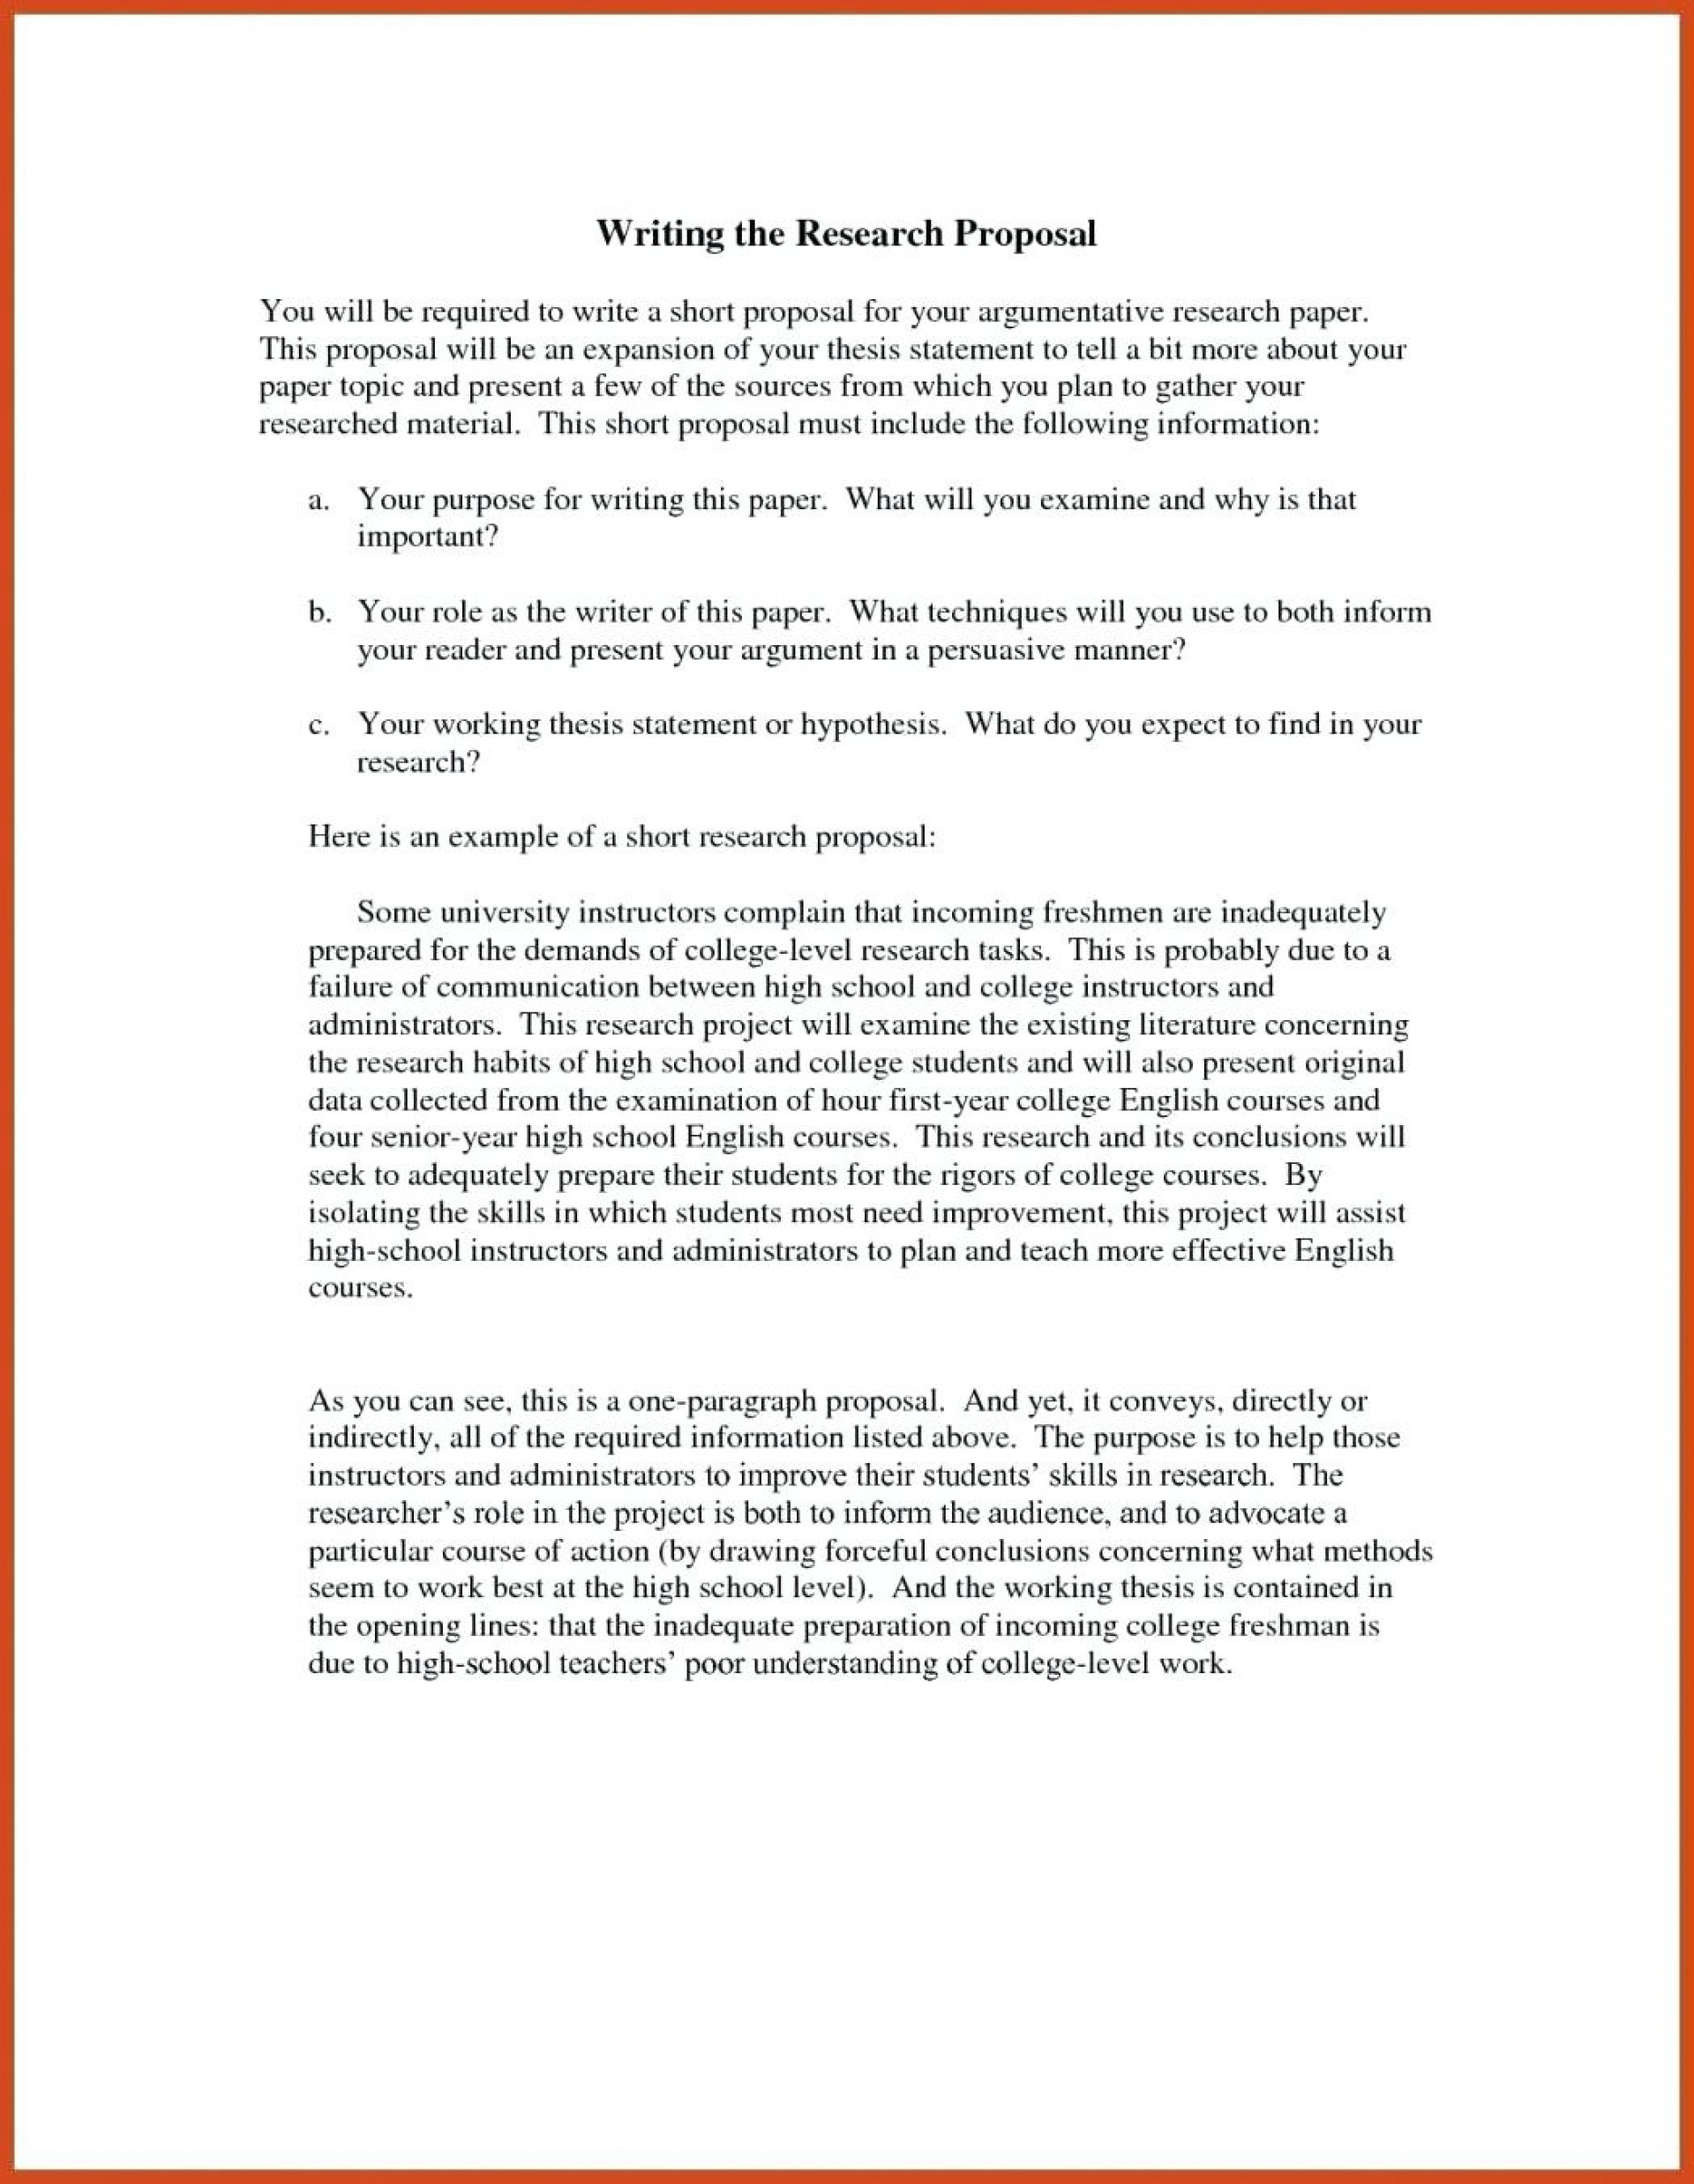 025 Sop Latex Template Research Plan Example Cover Letters Travel Agent An Of Paper In Format Proposal Design Onlines To Read Remarkable Essays Online Free Best 1920